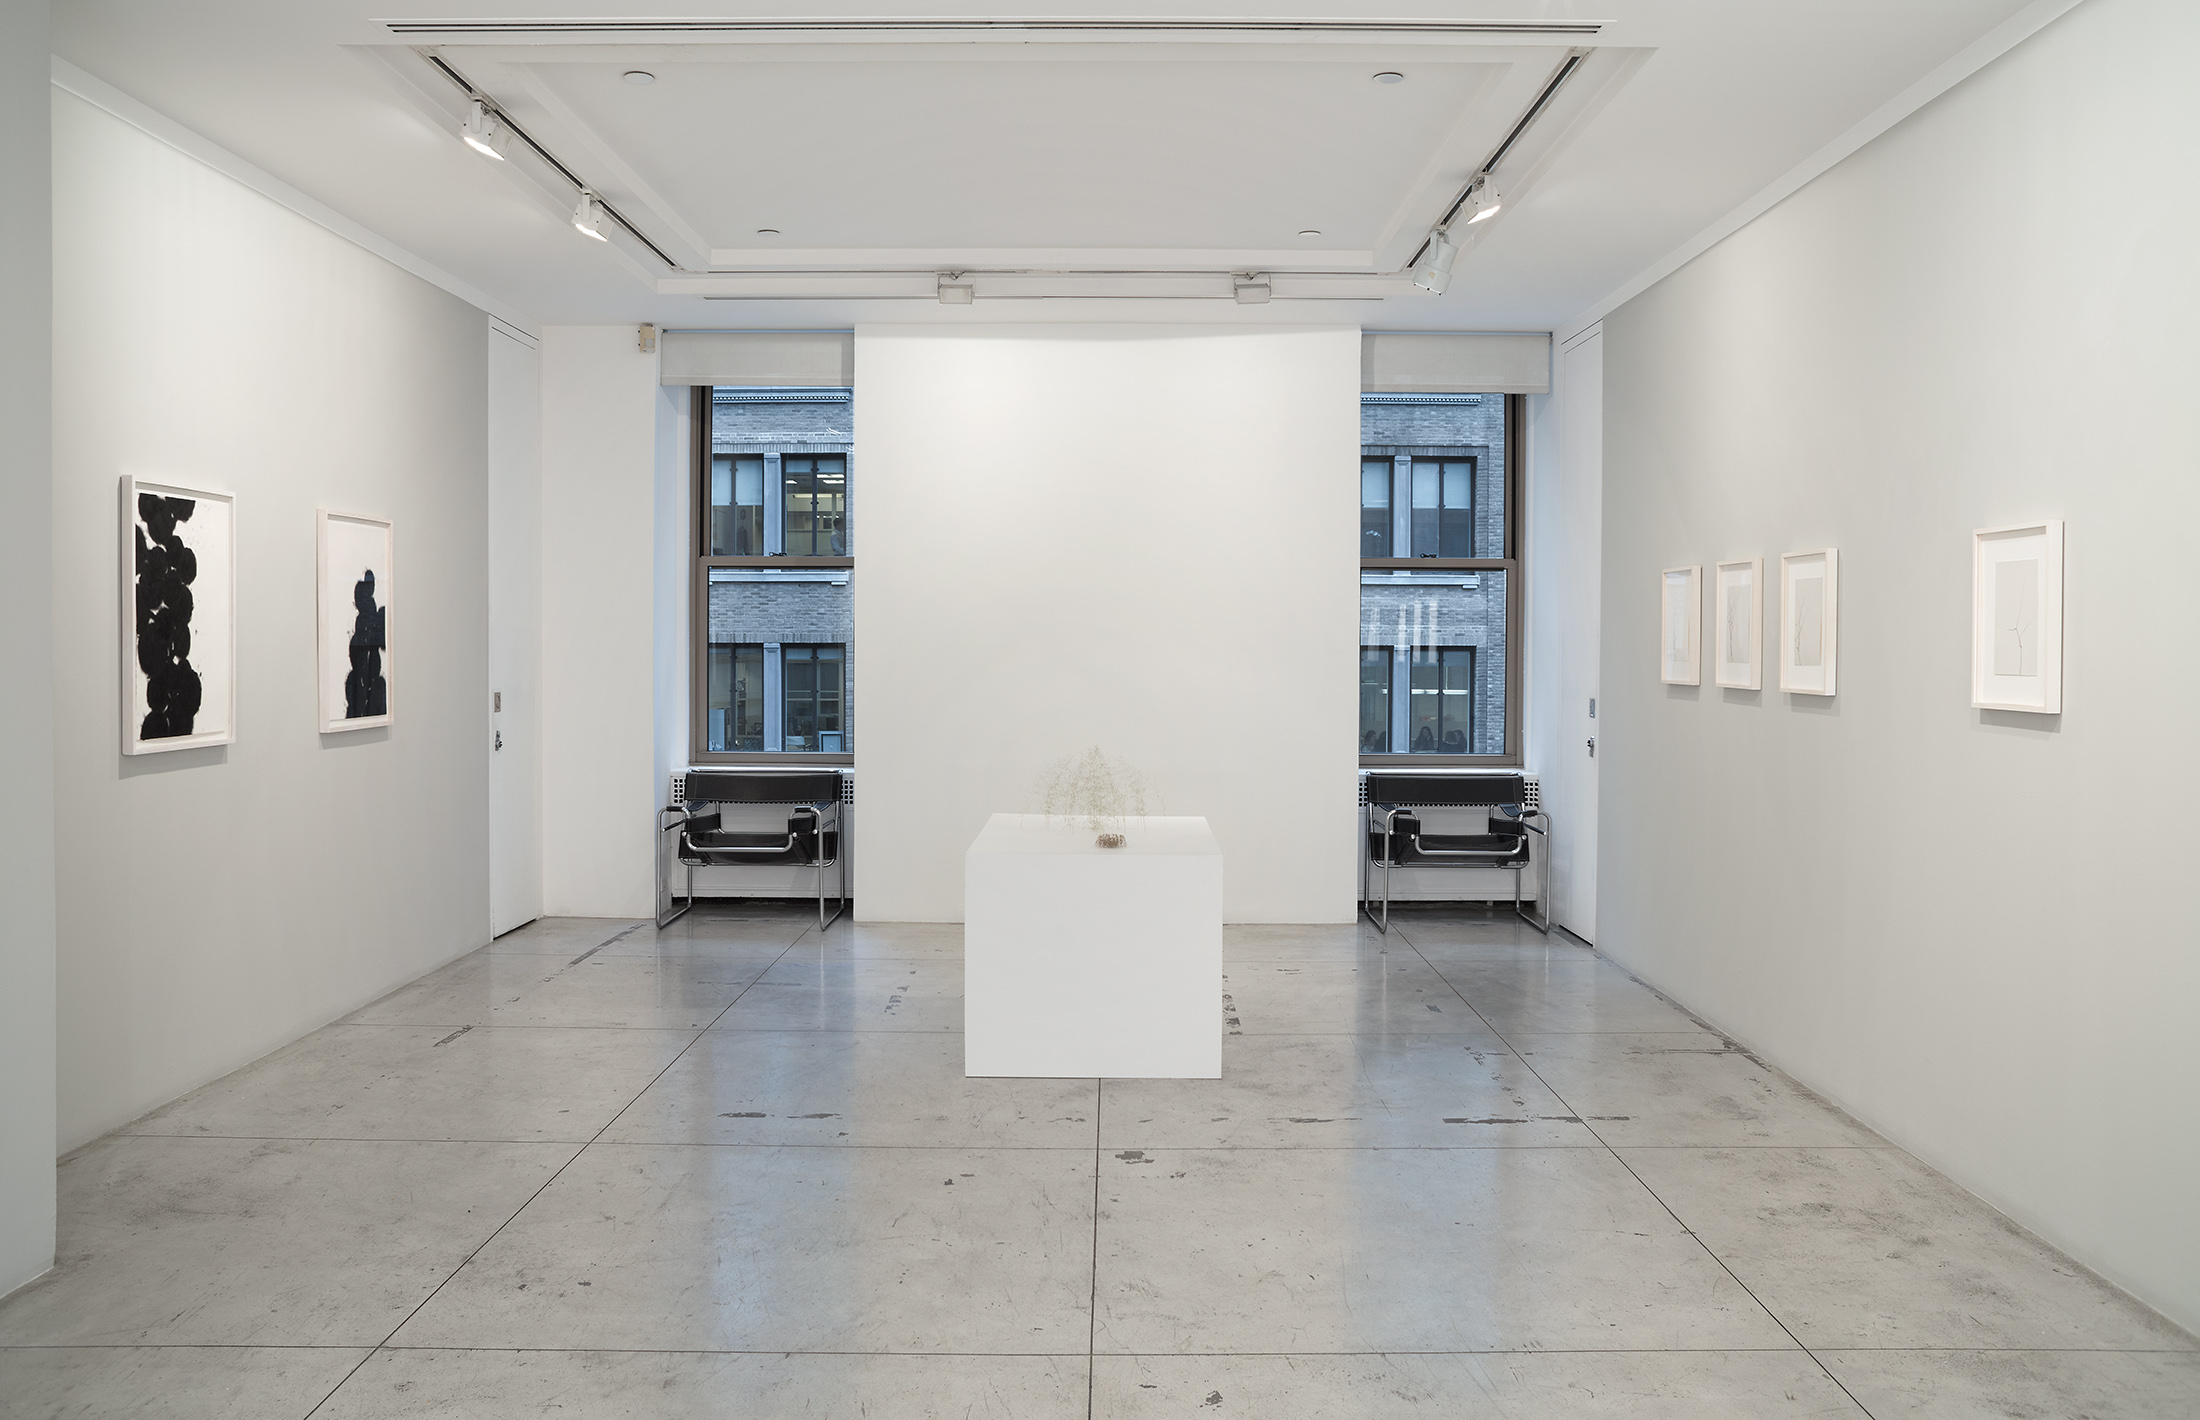 Christiane Löhr: diffuse,  Installation view at Jason McCoy Gallery, 2018.